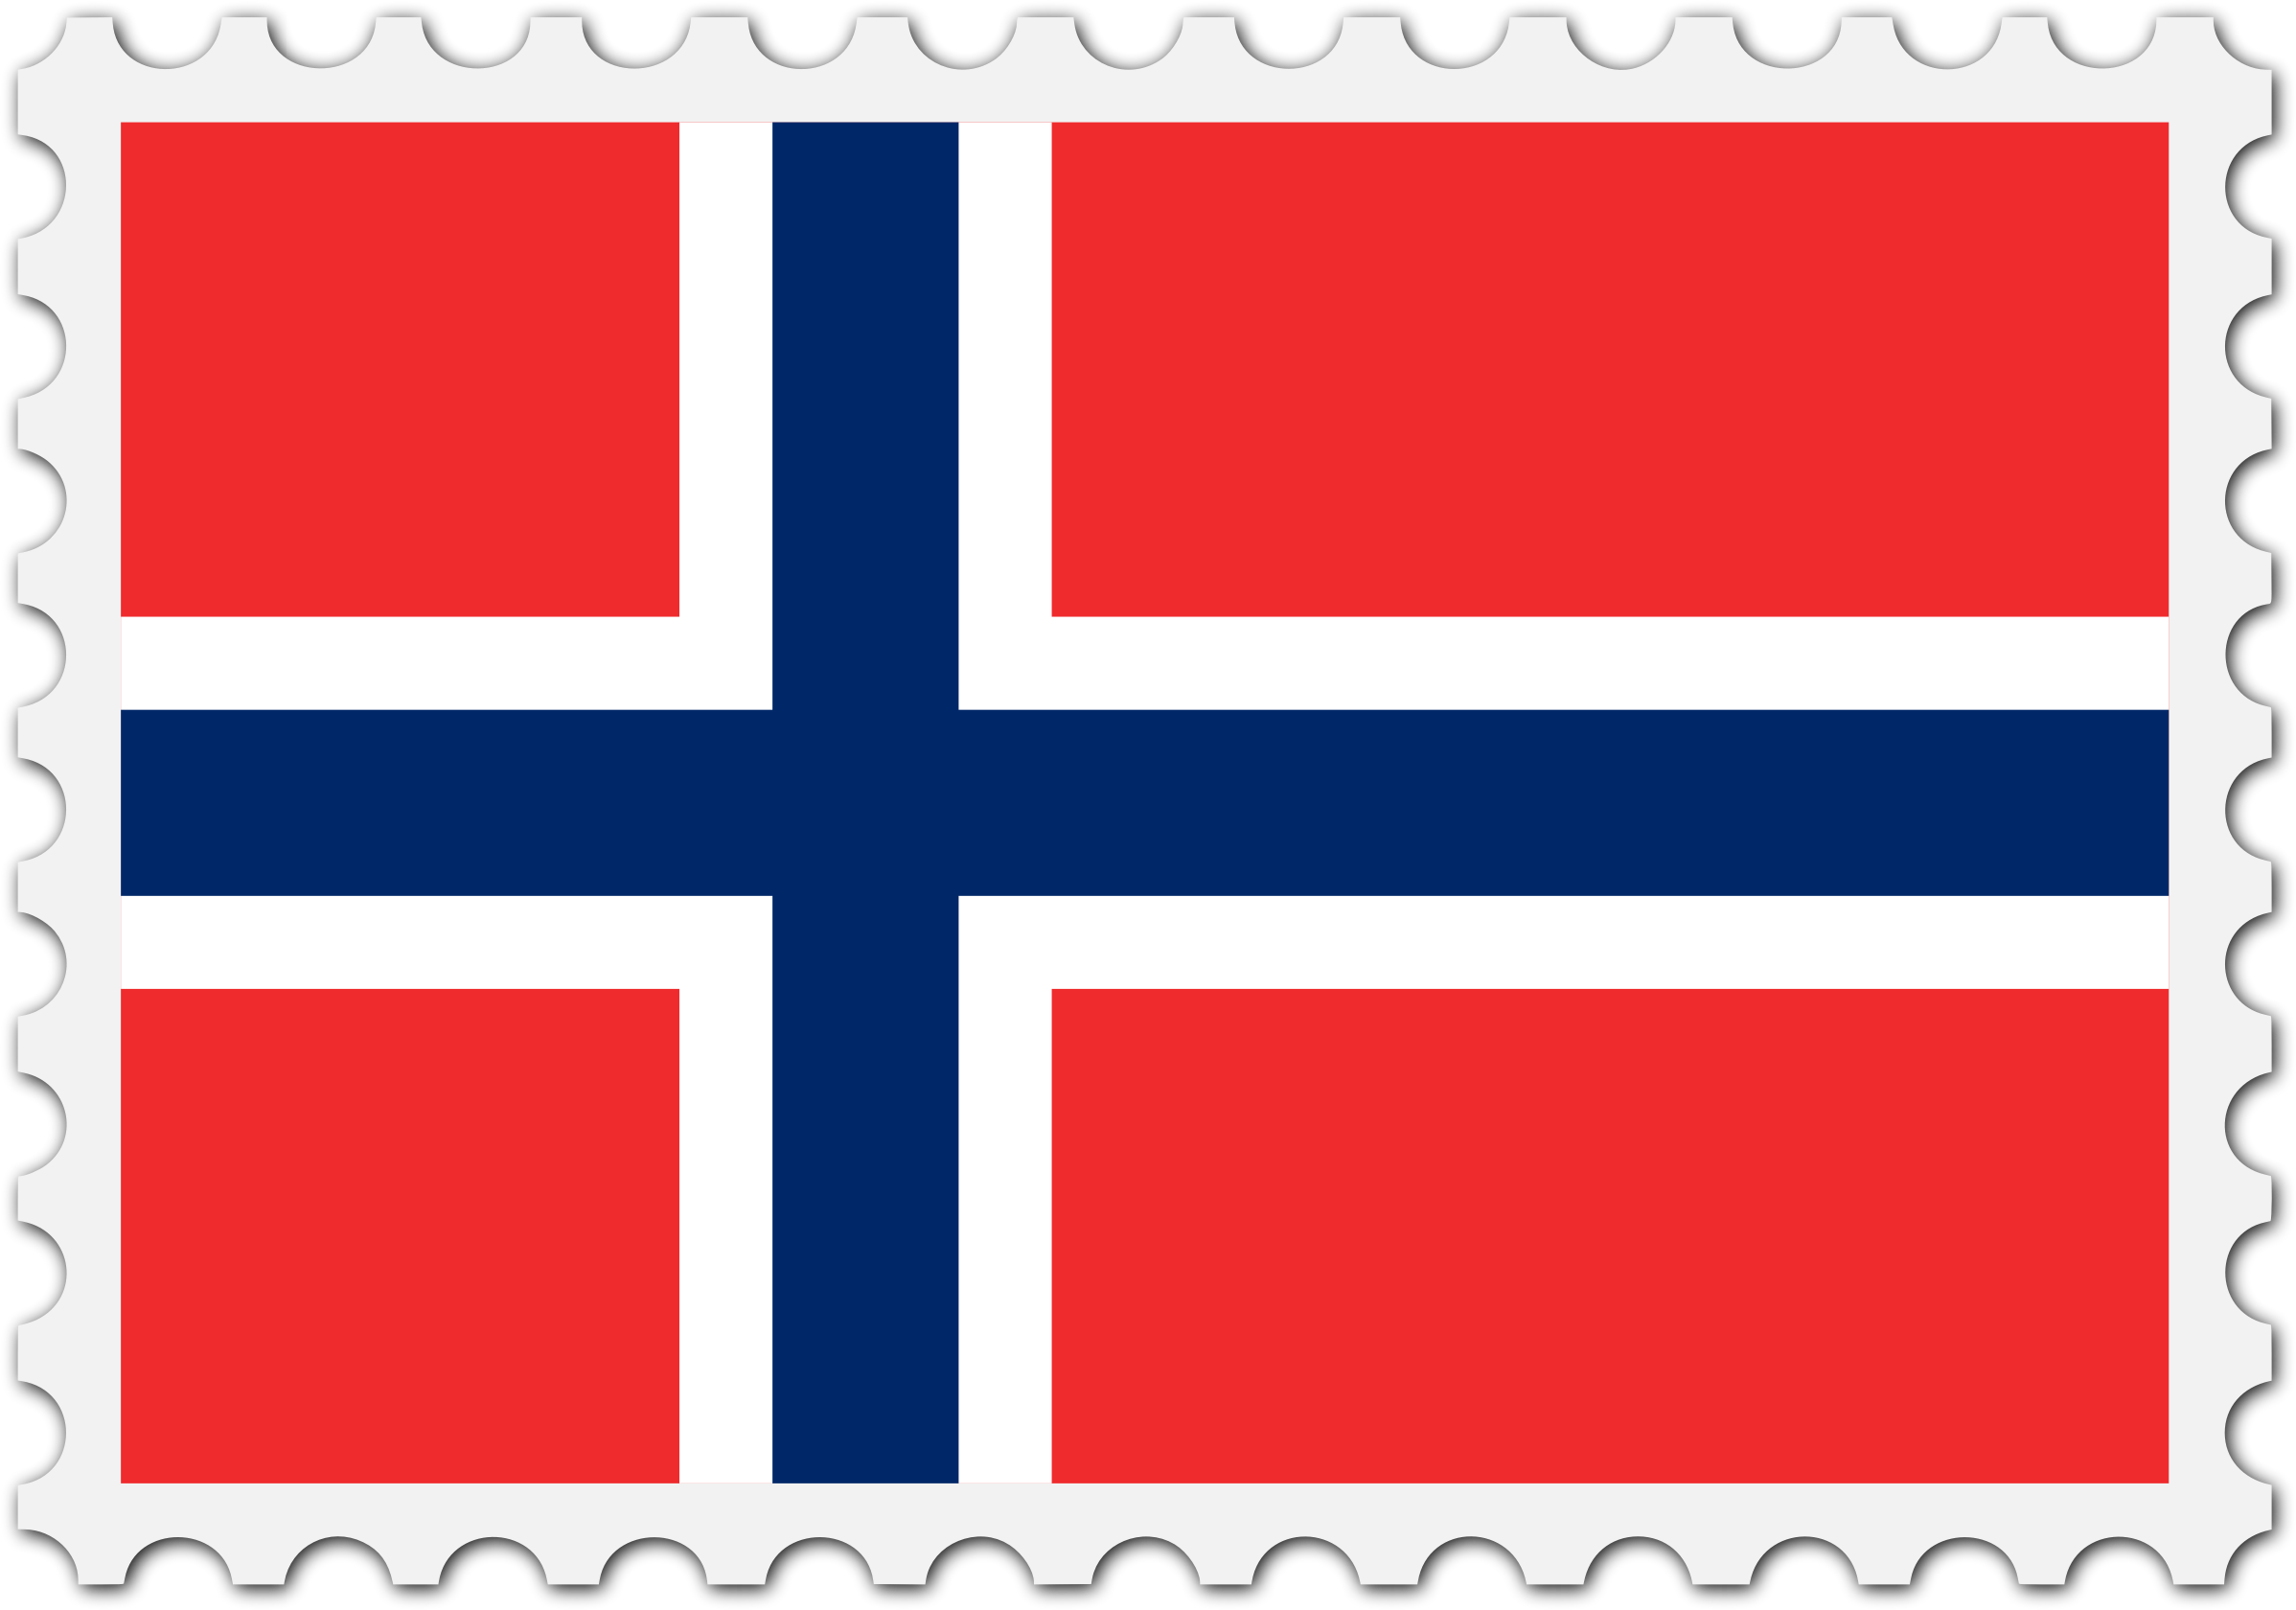 Norway flag stamp by Firkin